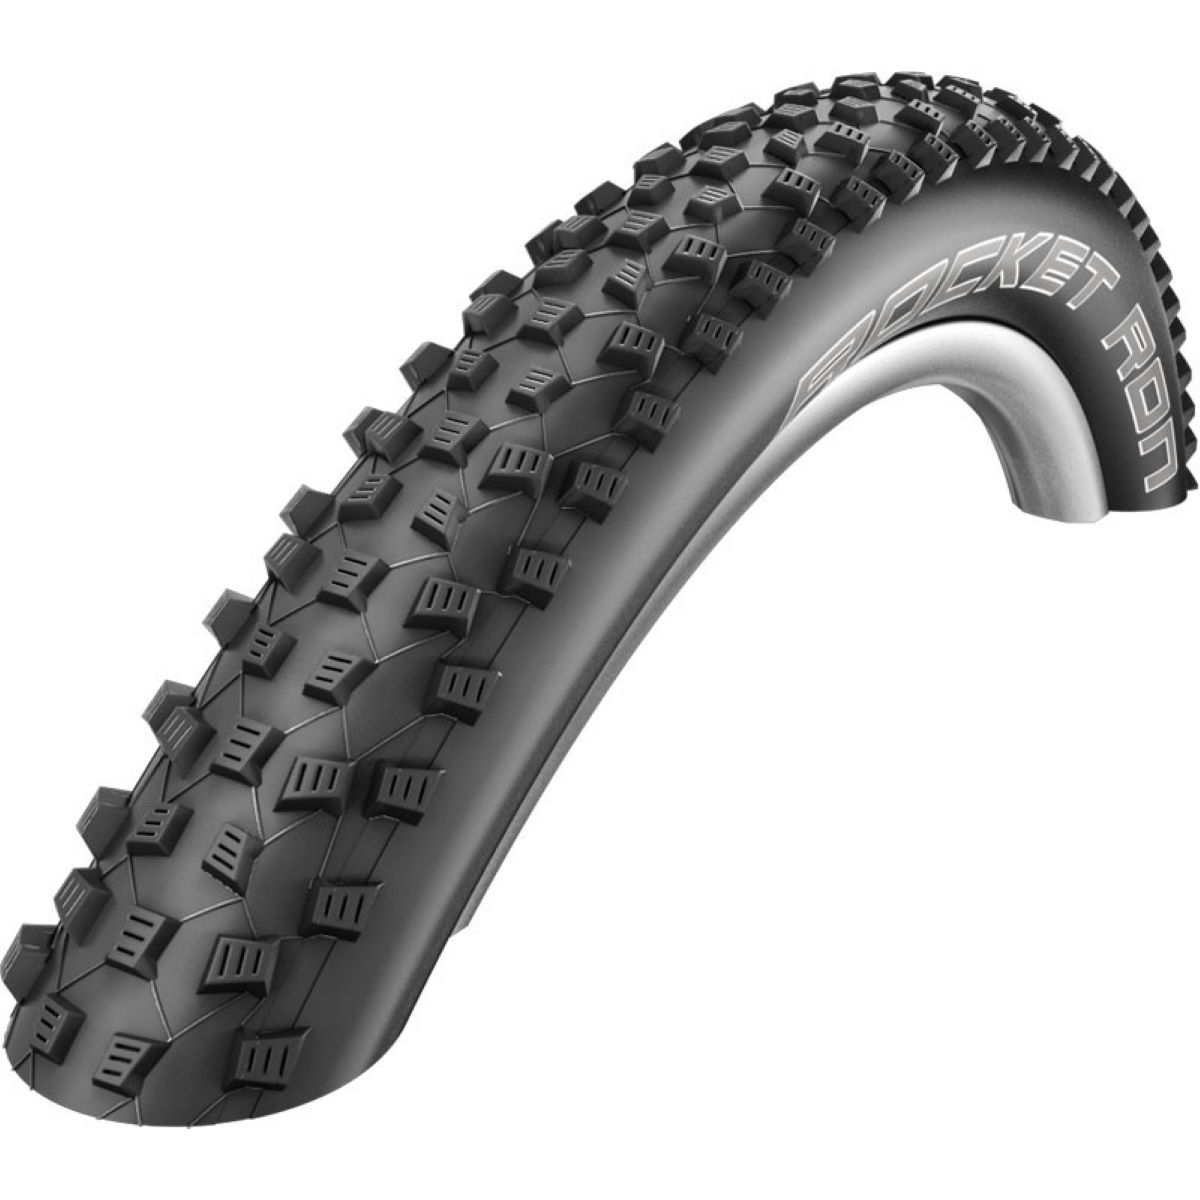 Pneu VTT Schwalbe Rocket Ron Performance Dual Compound - 26 x 2.25 Noir Pneus VTT